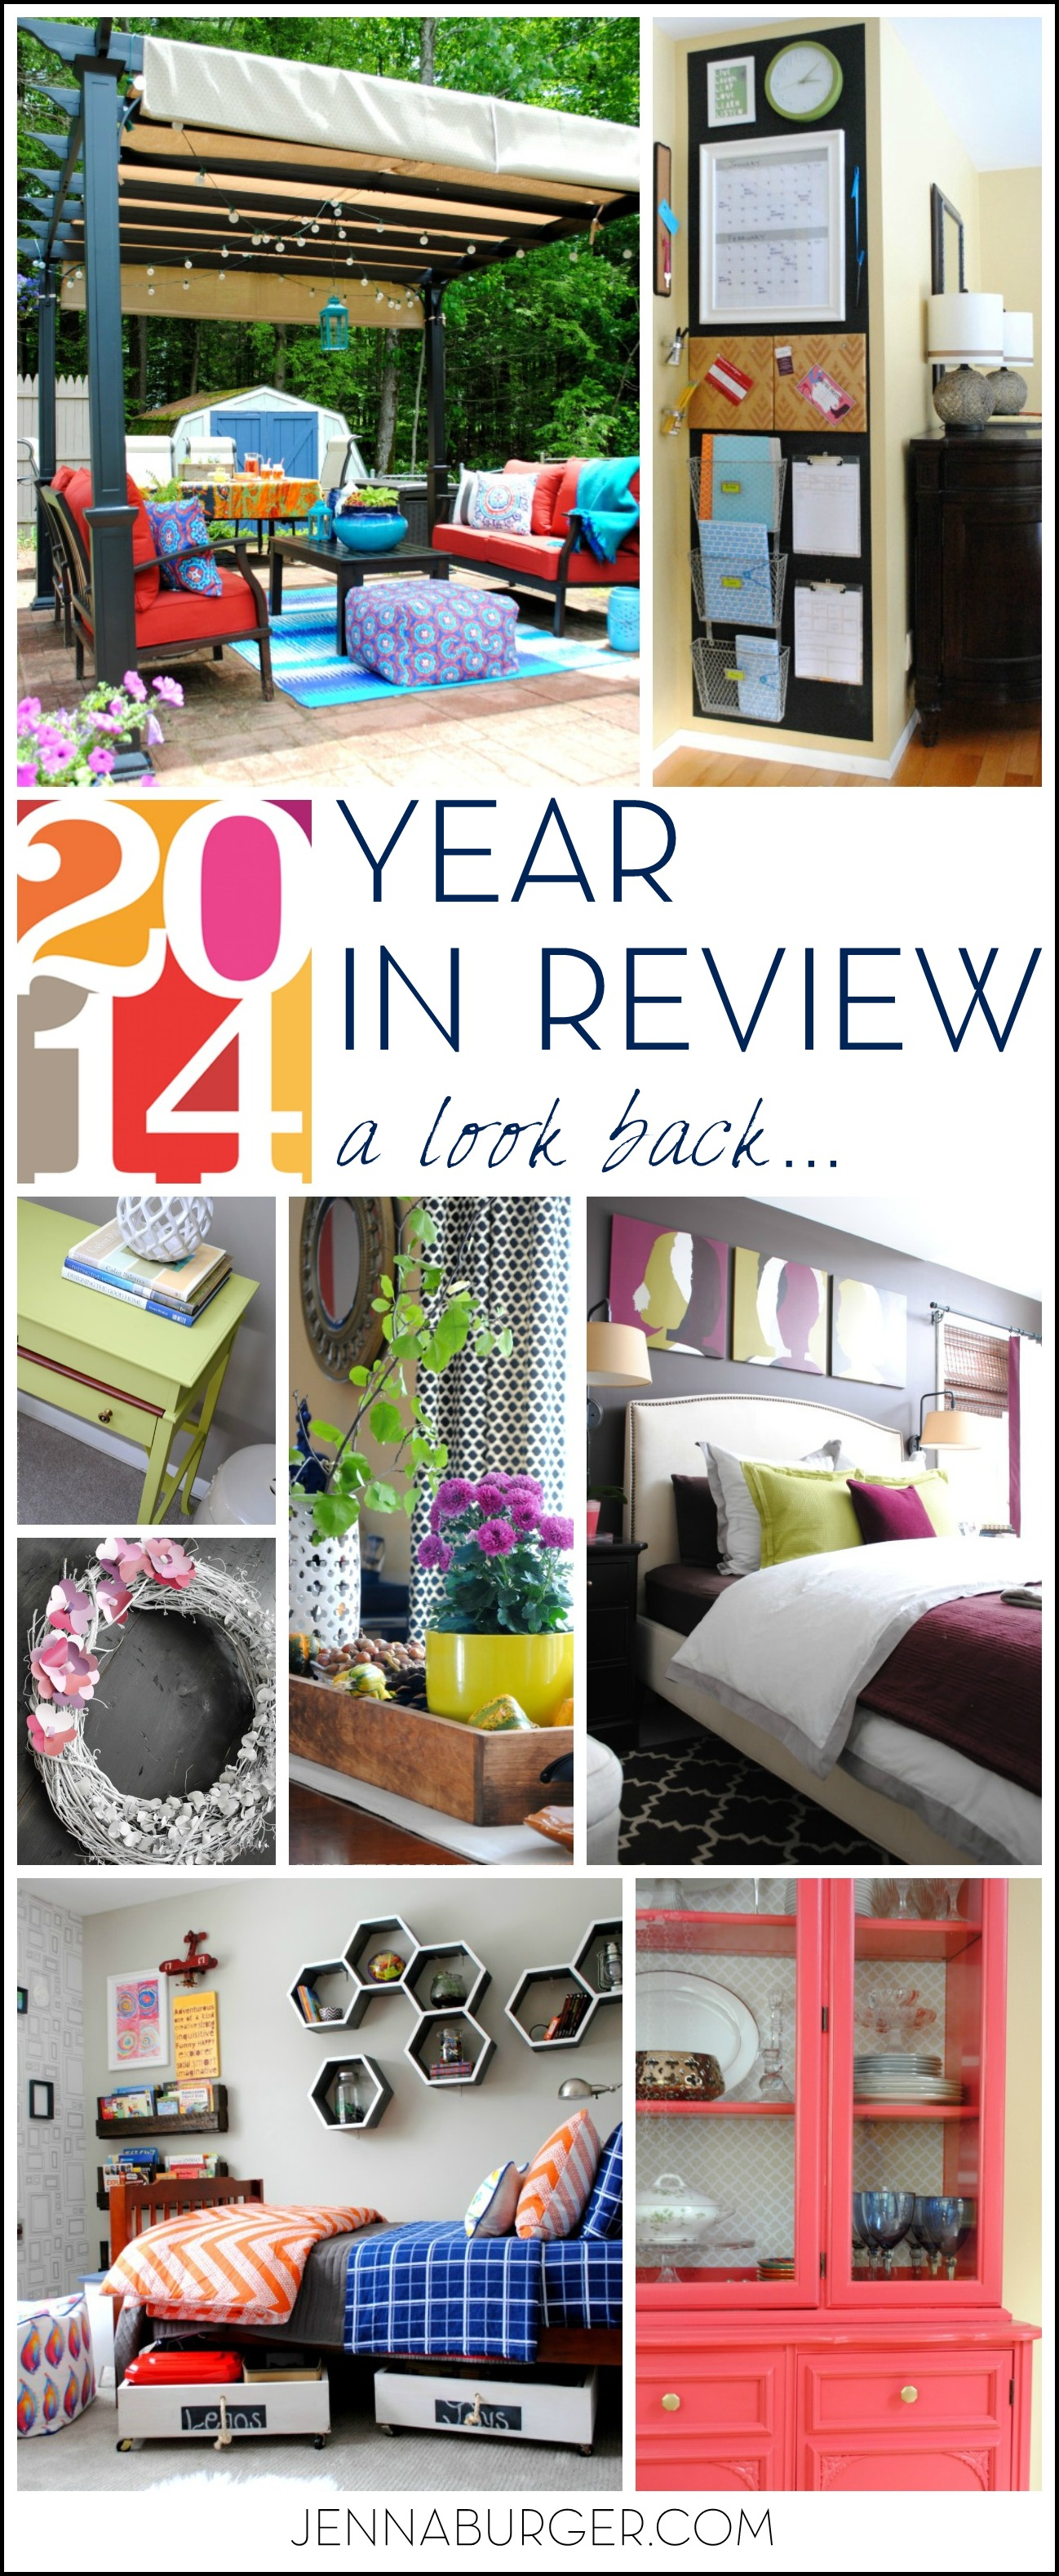 Take a look back on all the highlights of 2014 with a year in review!